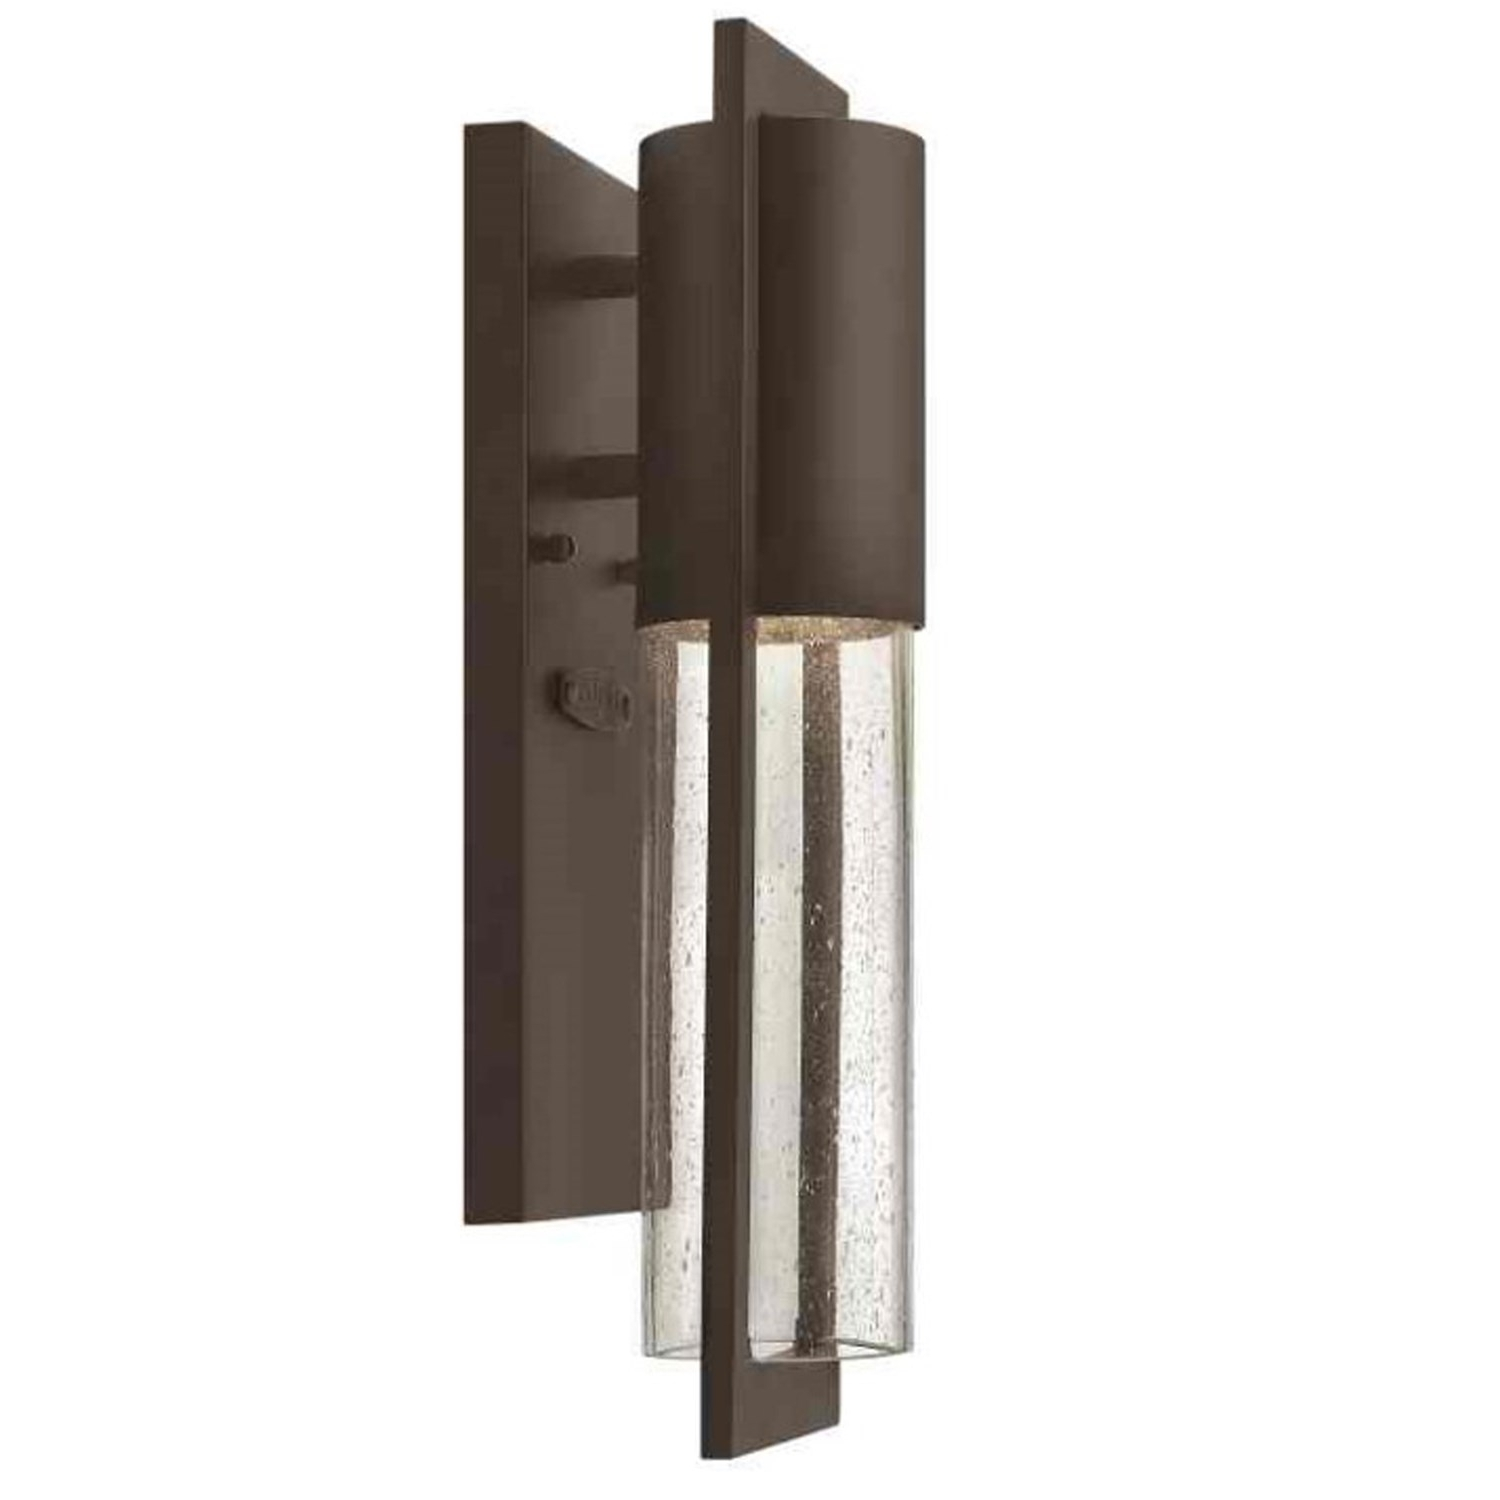 Newest Hinkley 1326Kz Led Dwell Mini 1 Light Led Outdoor Wall Sconce In With Beach Outdoor Wall Lighting (View 13 of 20)